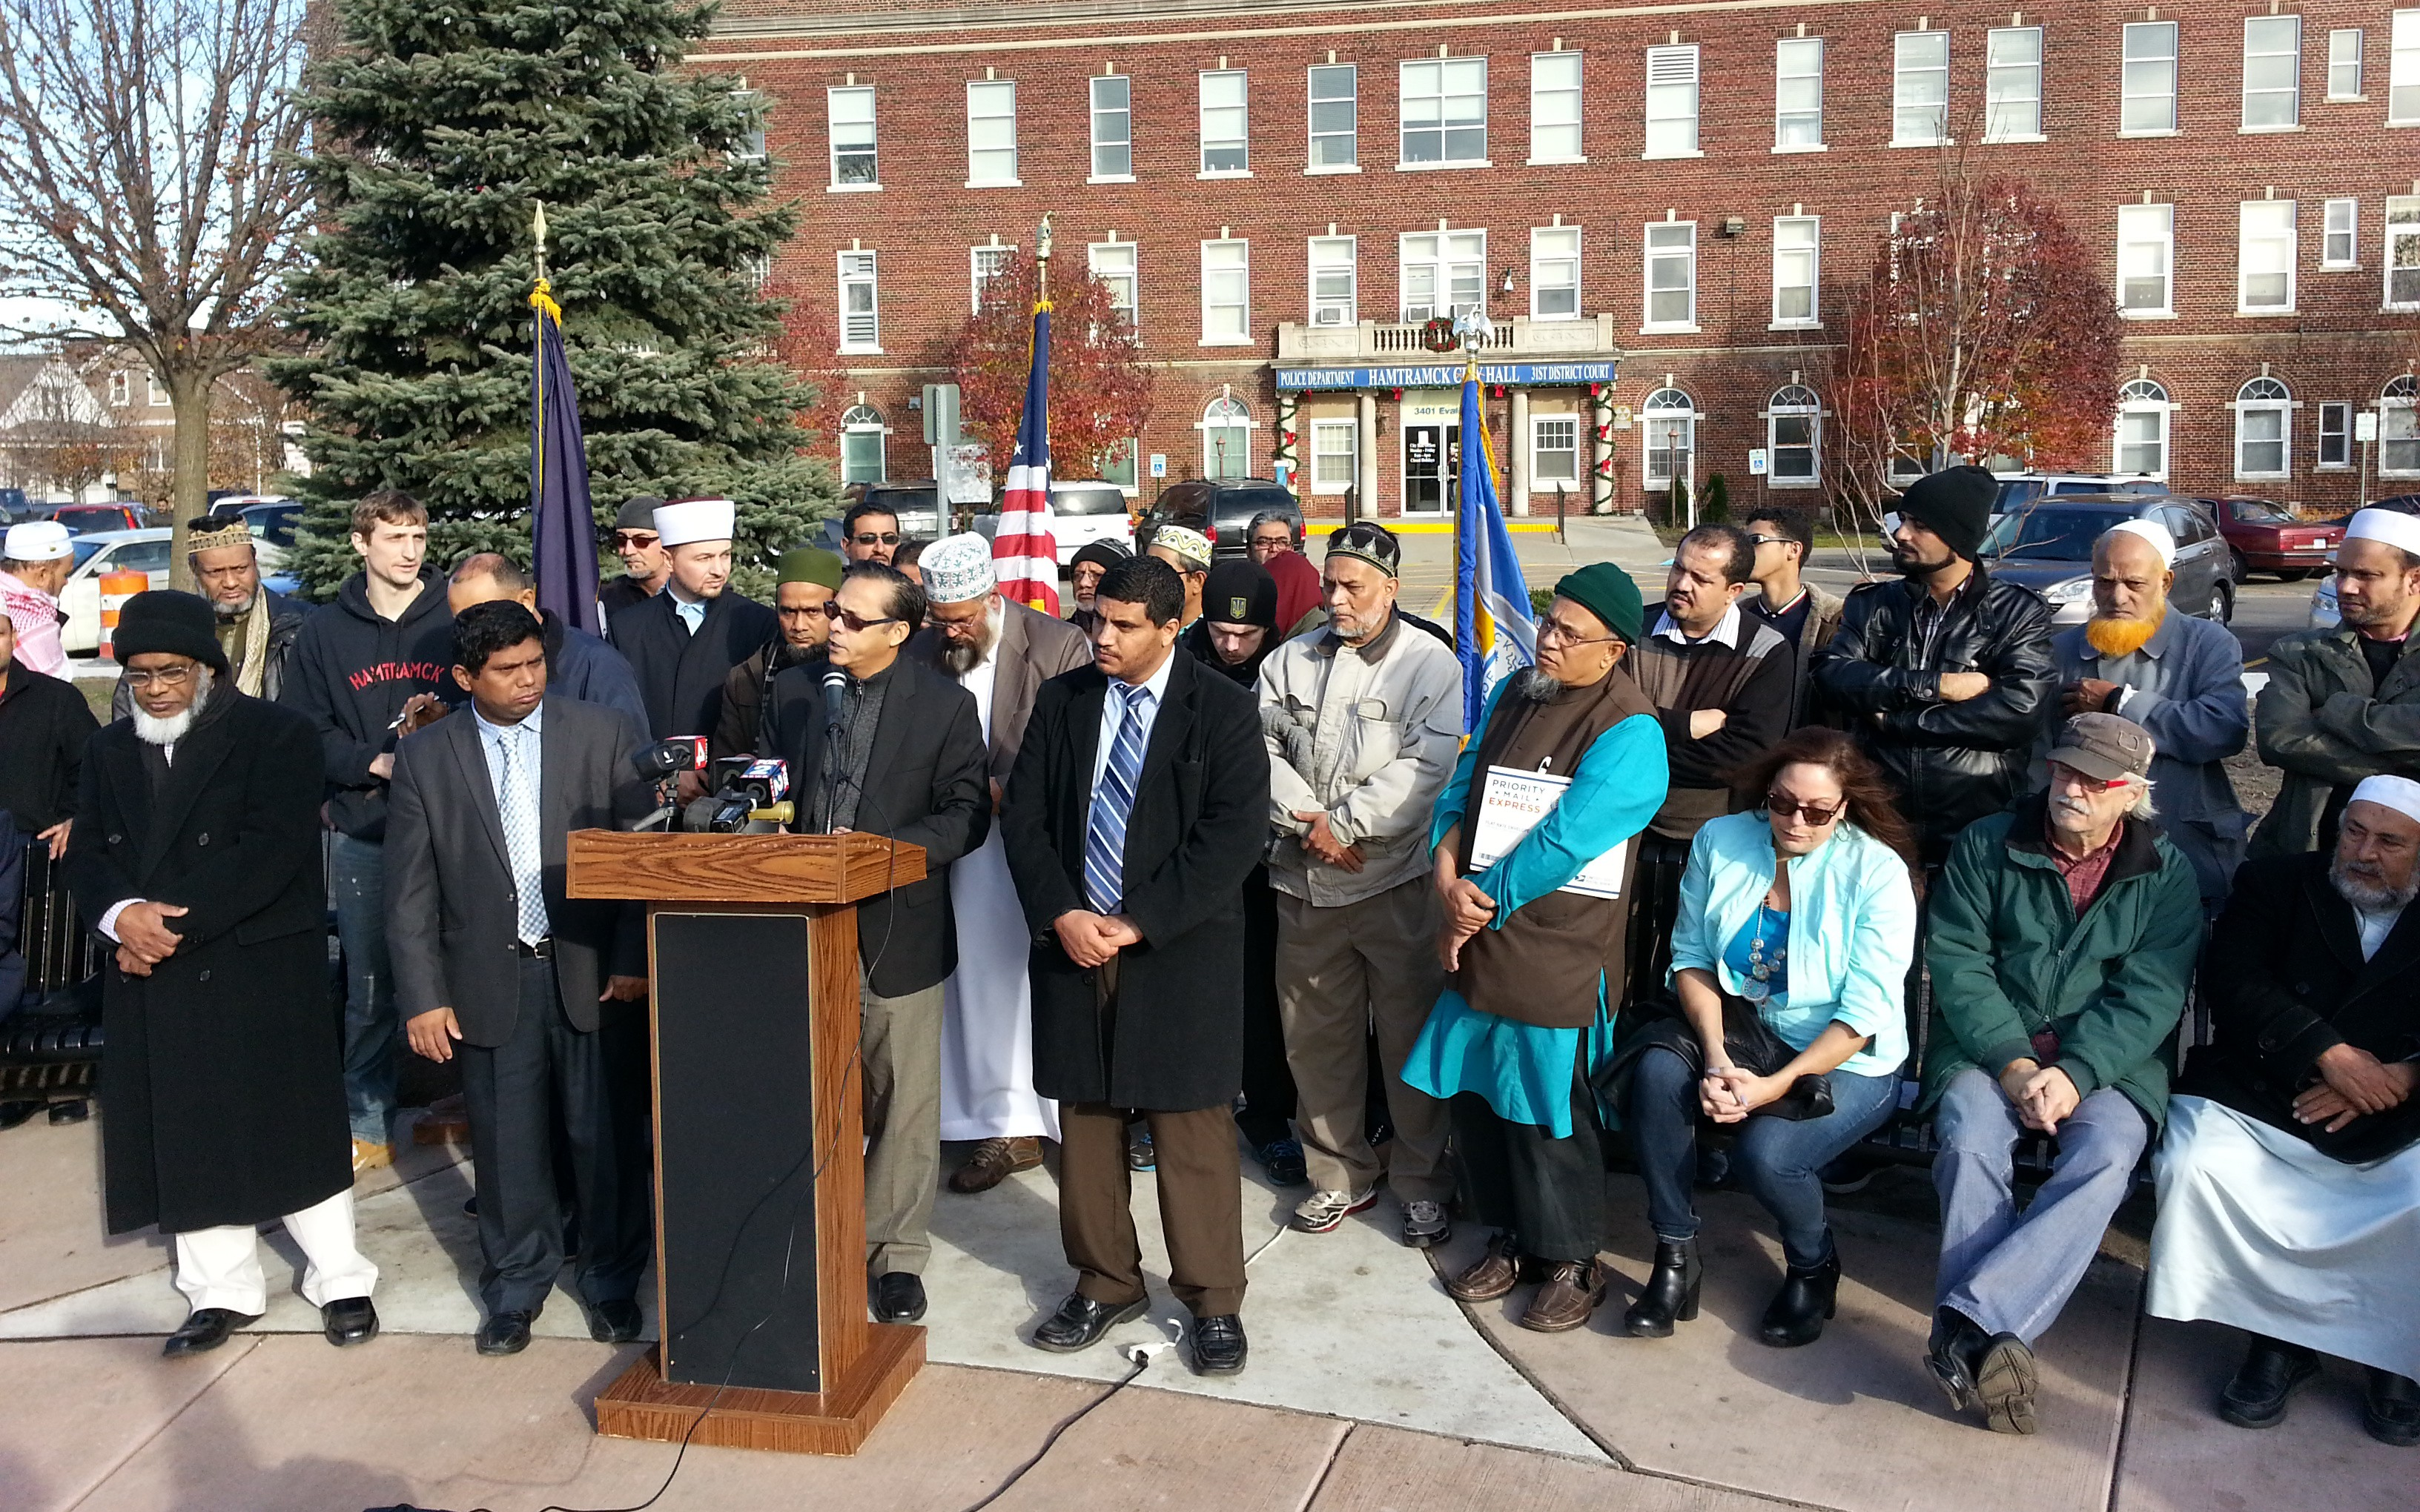 Residents of the greater Hamtramck area gather to speak out against ISIS. (credit: Jon Hewett)